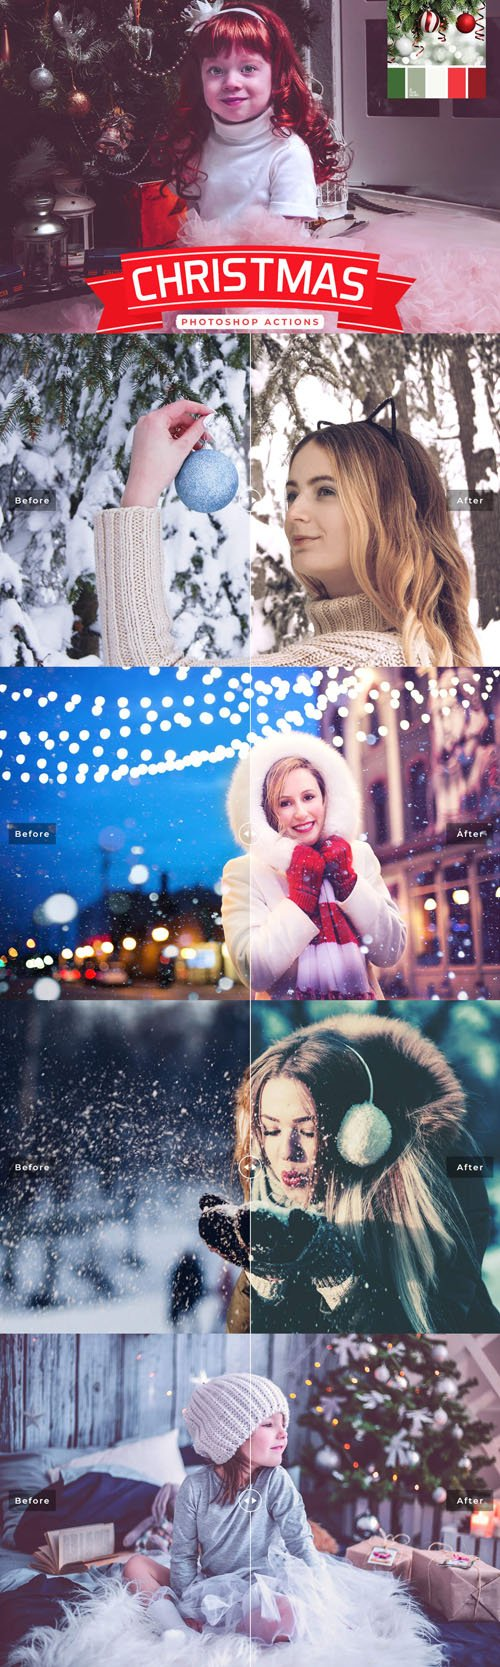 6 Christmas Photoshop Actions